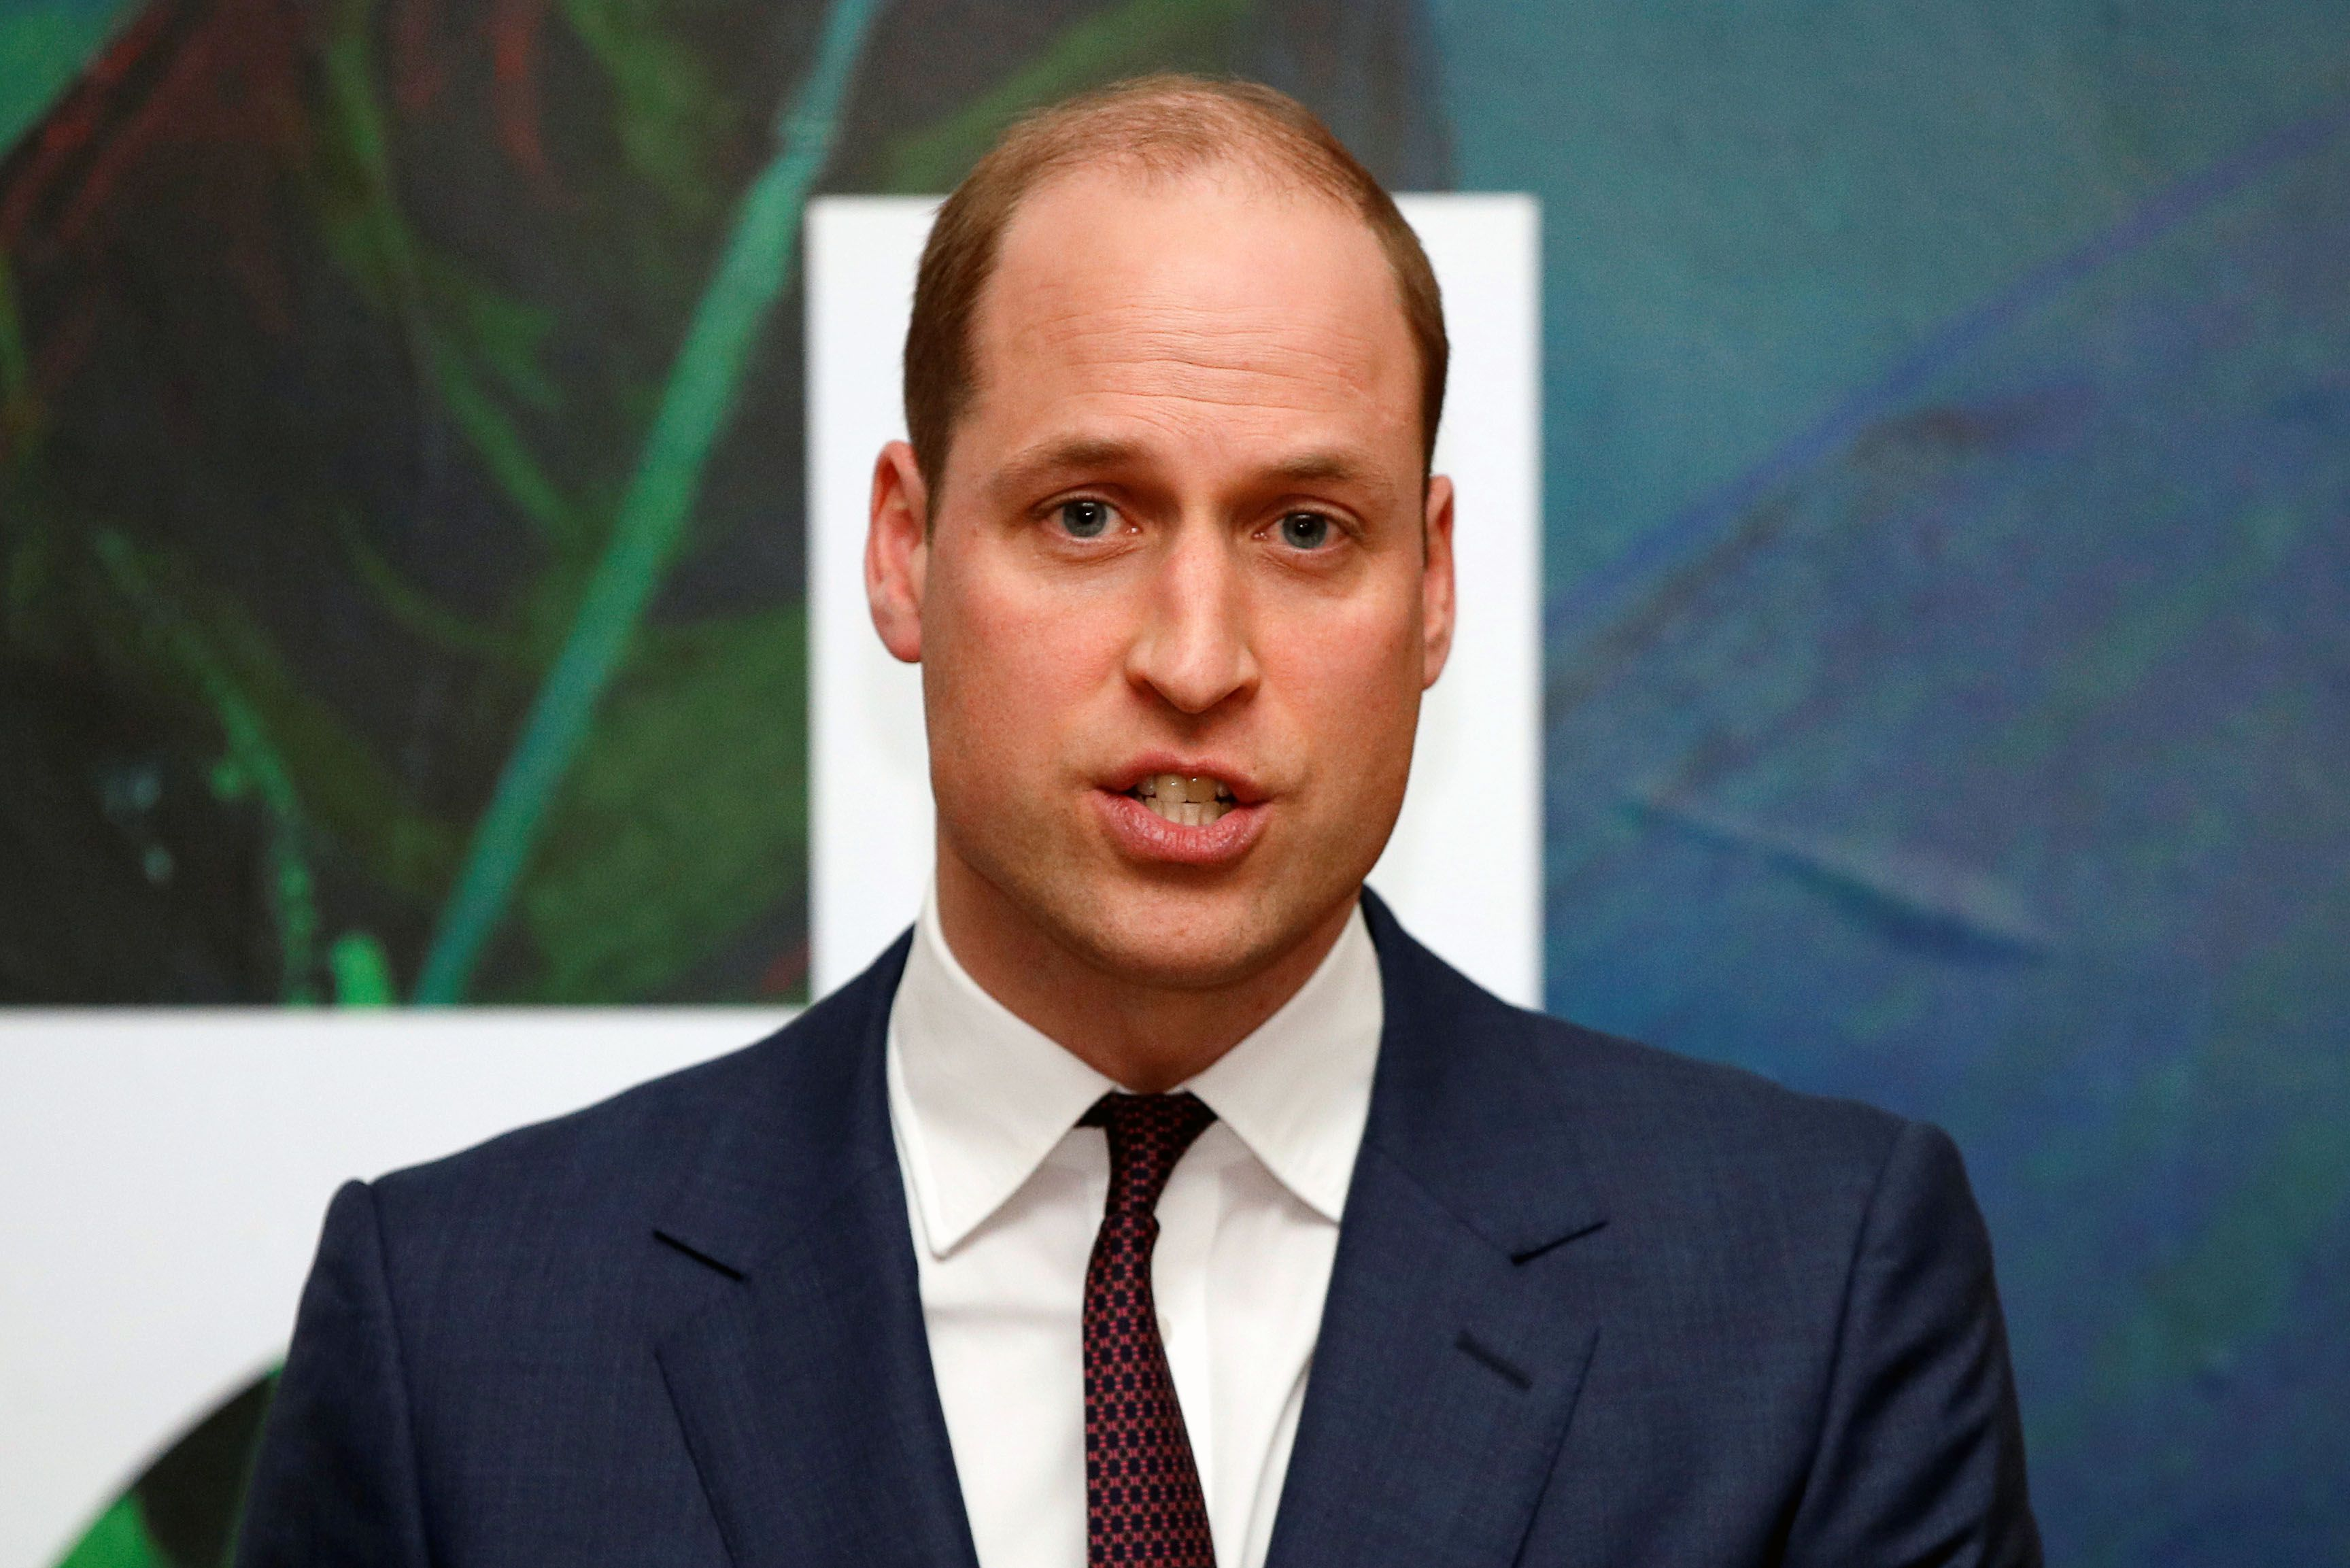 Prince William Says The Day He Dreaded Most Has Come With Coronavirus